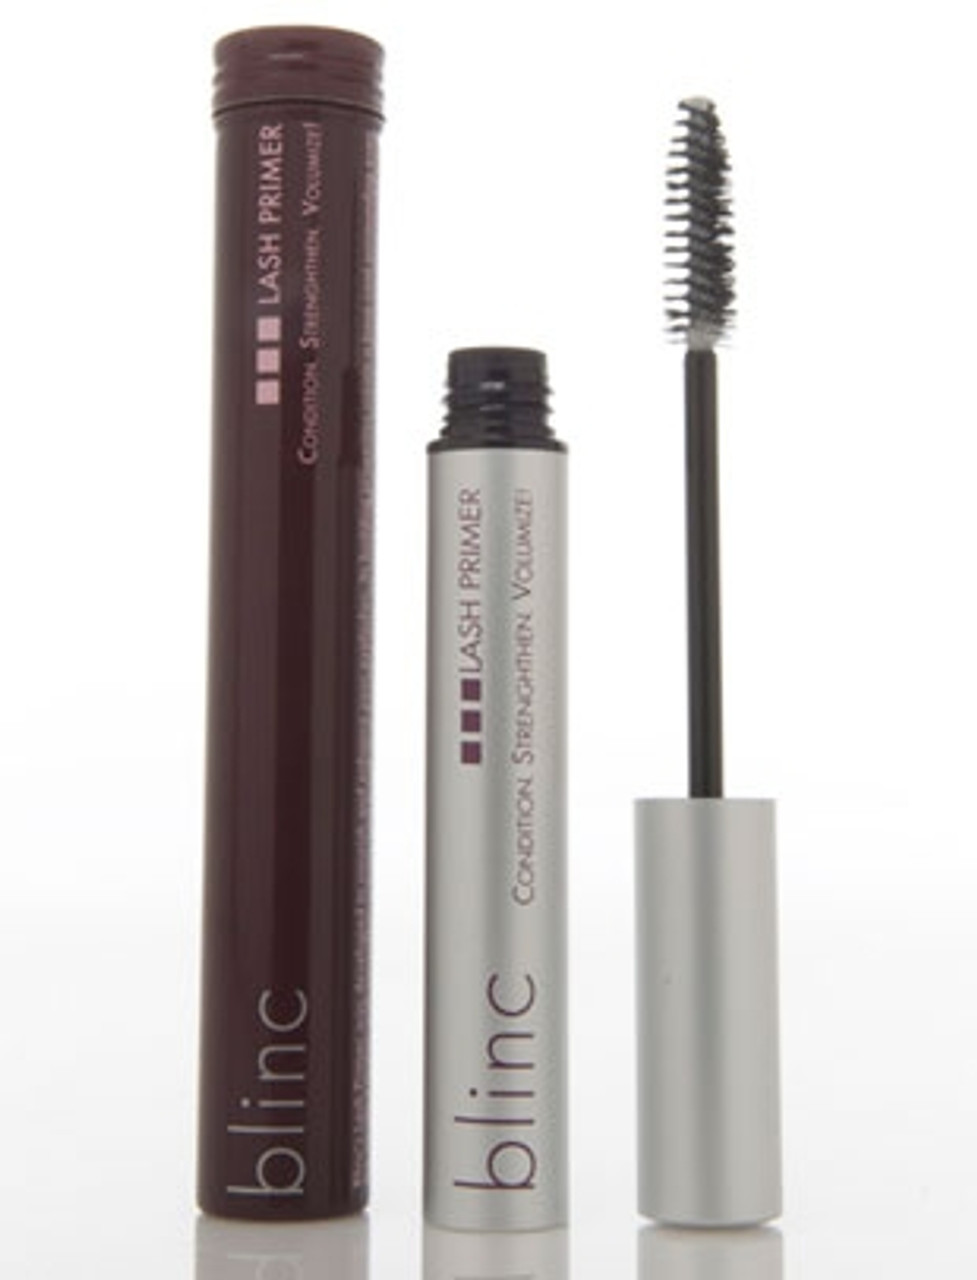 Blinc lash primer was developed to nourish and enhance eyelashes, creating a base of incredible volume and length thatamplifies your mascara's effect. Apply as many coats as desired, waiting 30 seconds between each coat, before applyingmascara or going to bed. It removes automatically along with your mascara or on its own with lots of warm water.